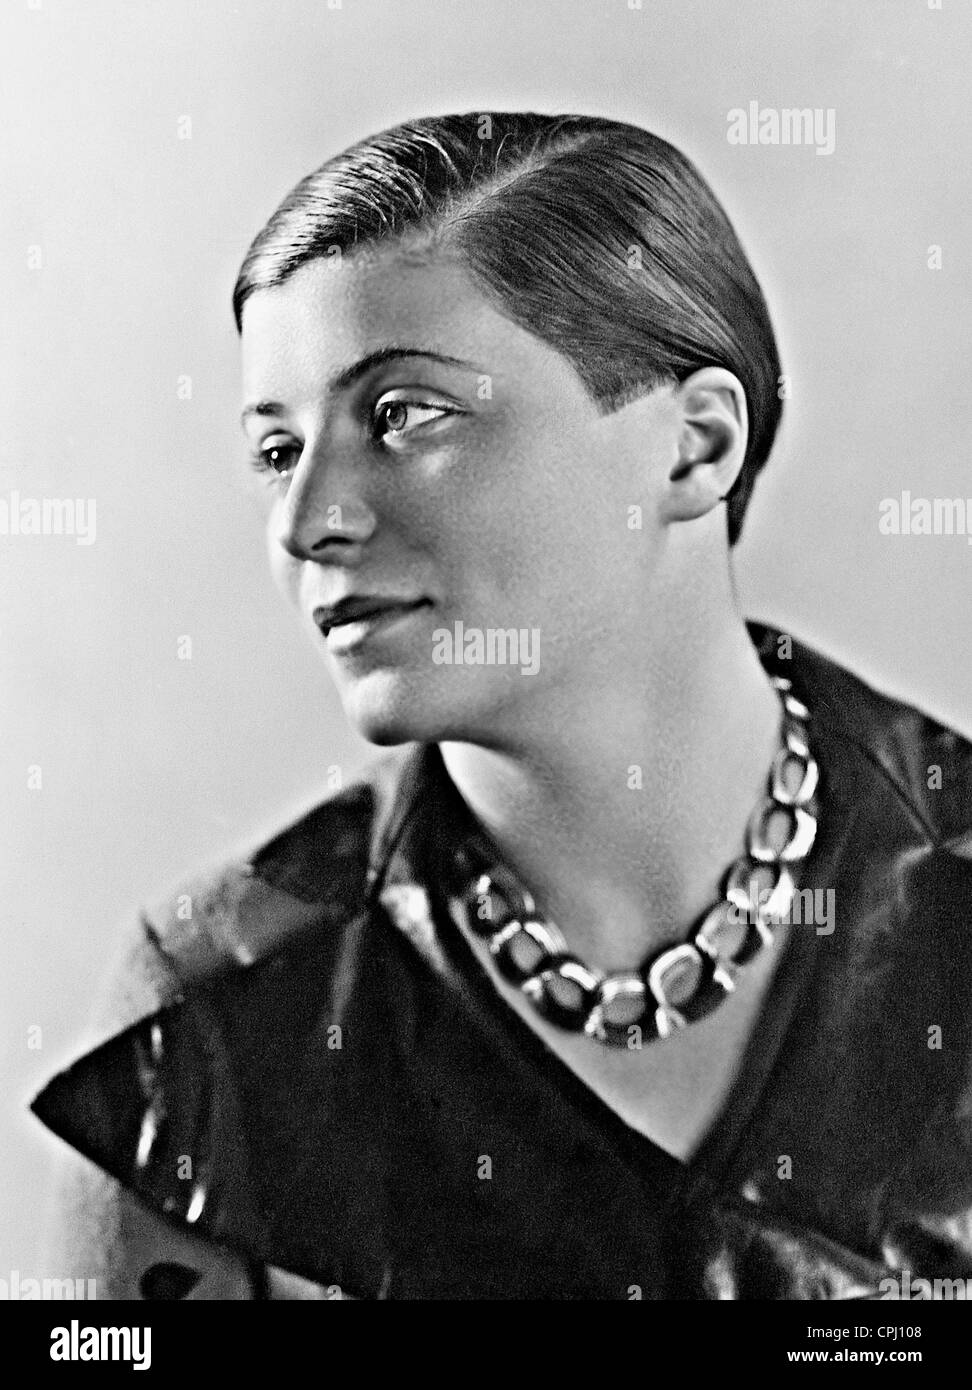 Elly Beinhorn, 1936 - Stock Image